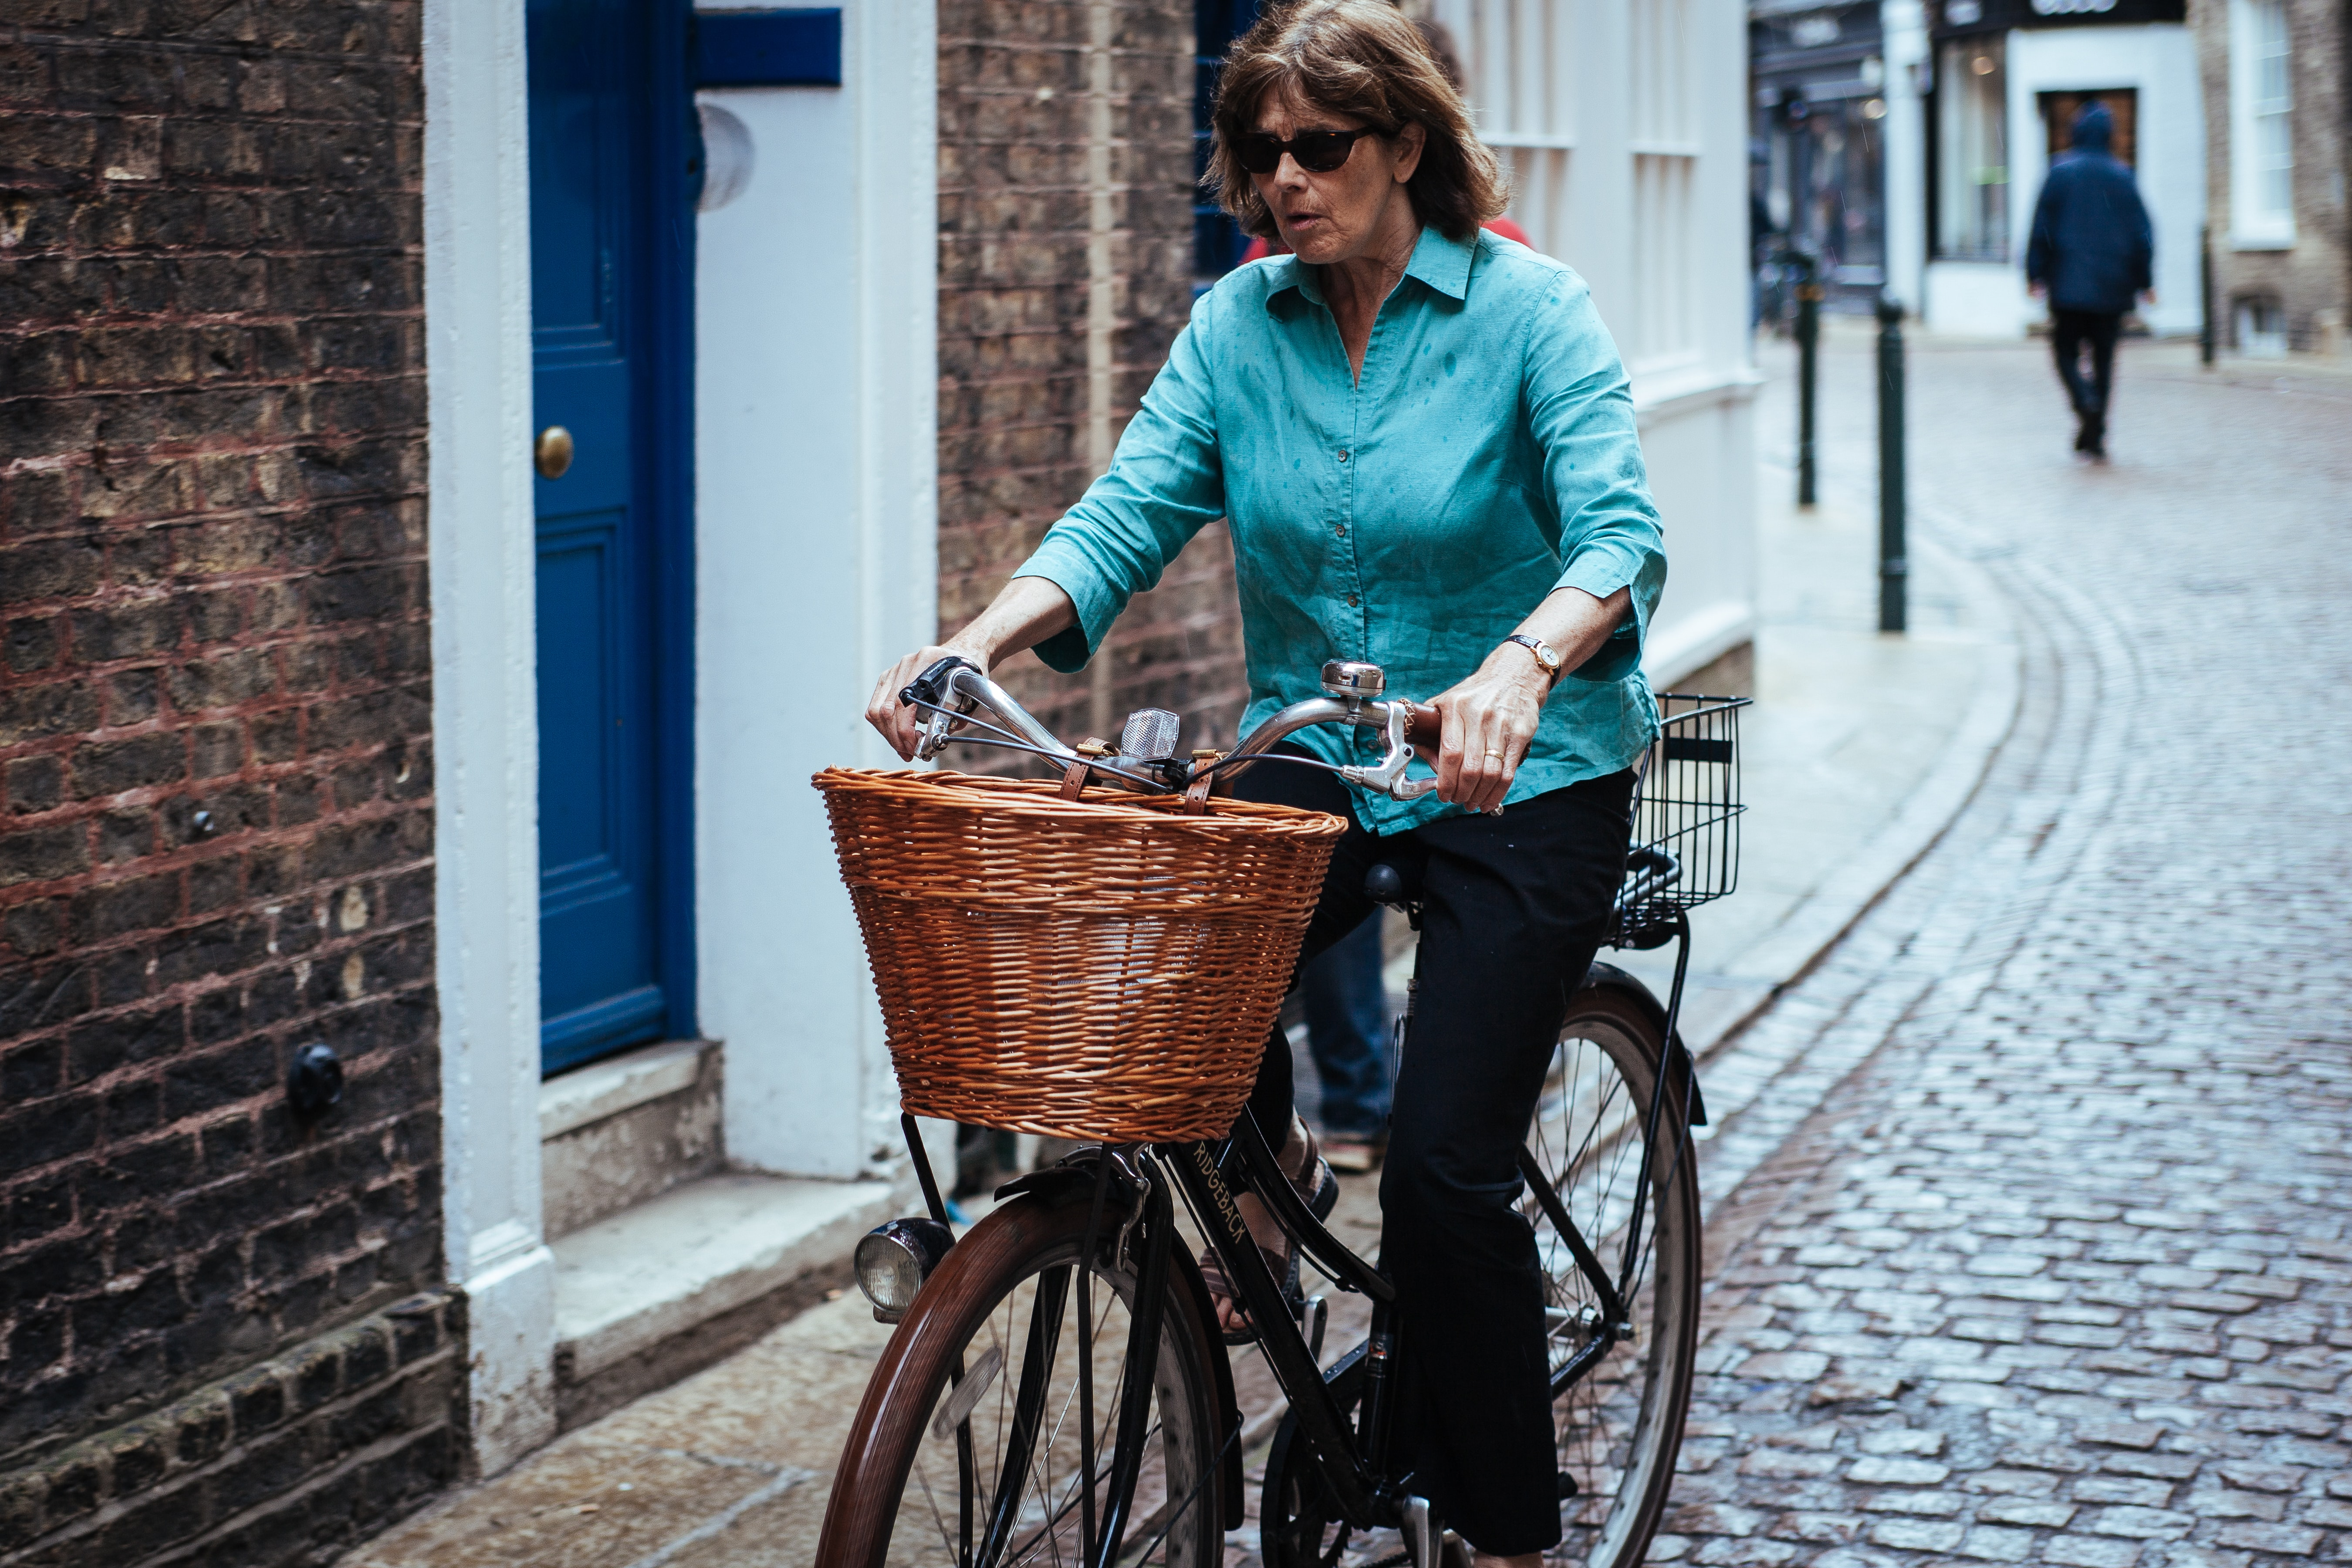 A middle-aged woman in a blue shirt riding a bicycle on a cobbled street